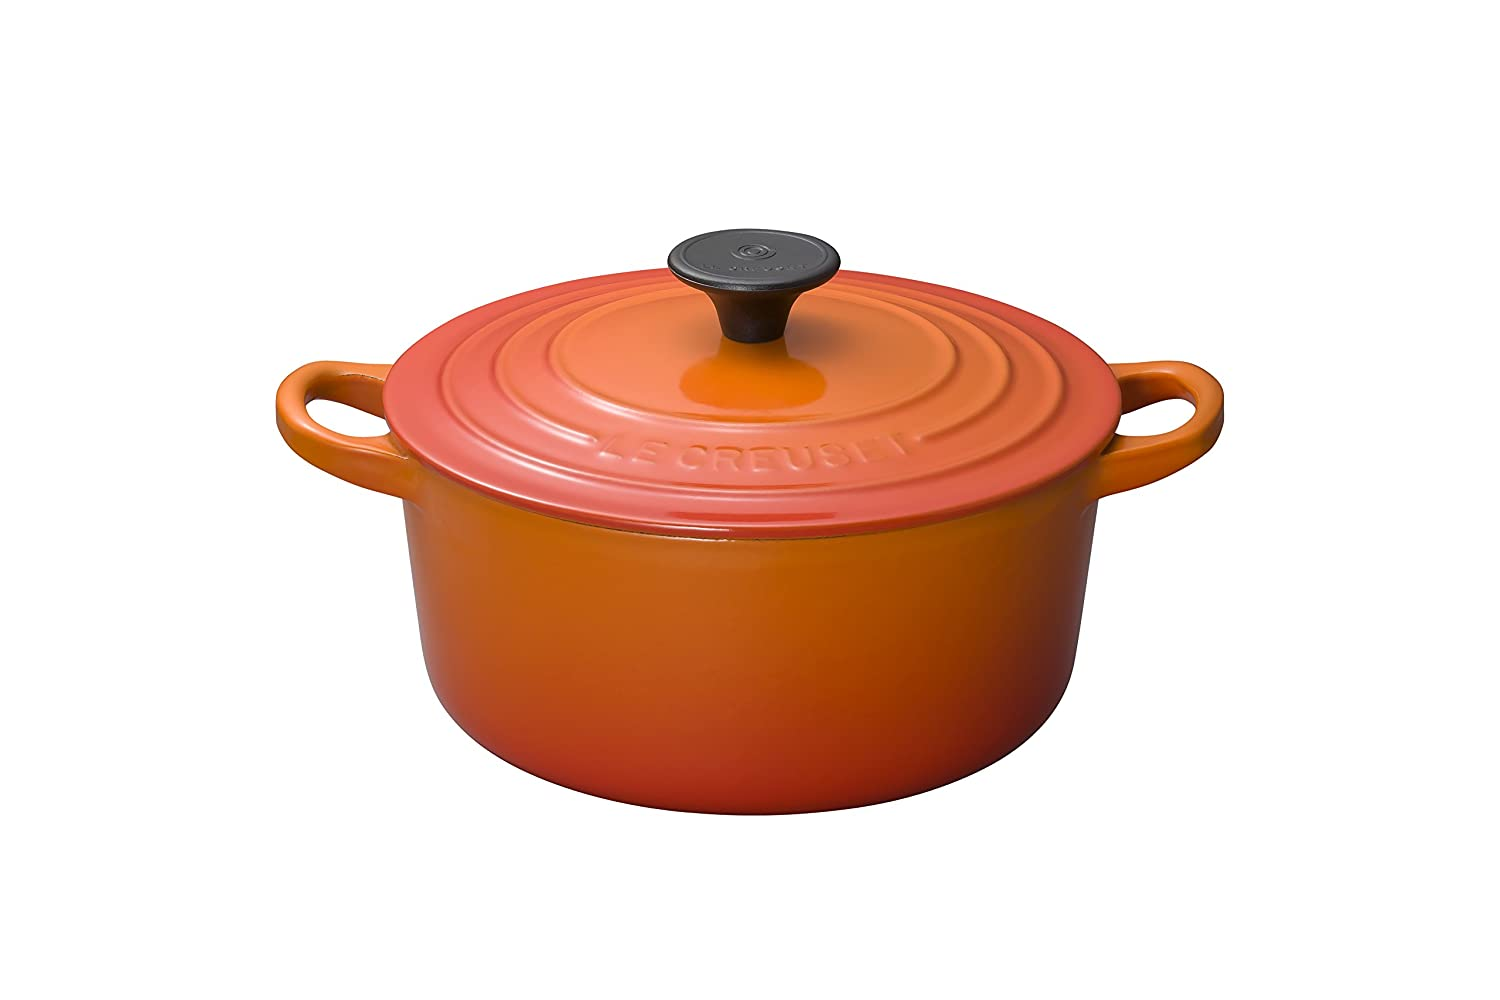 Le Creuset Enameled Cast-Iron 2-Quart Round French Oven, Flame